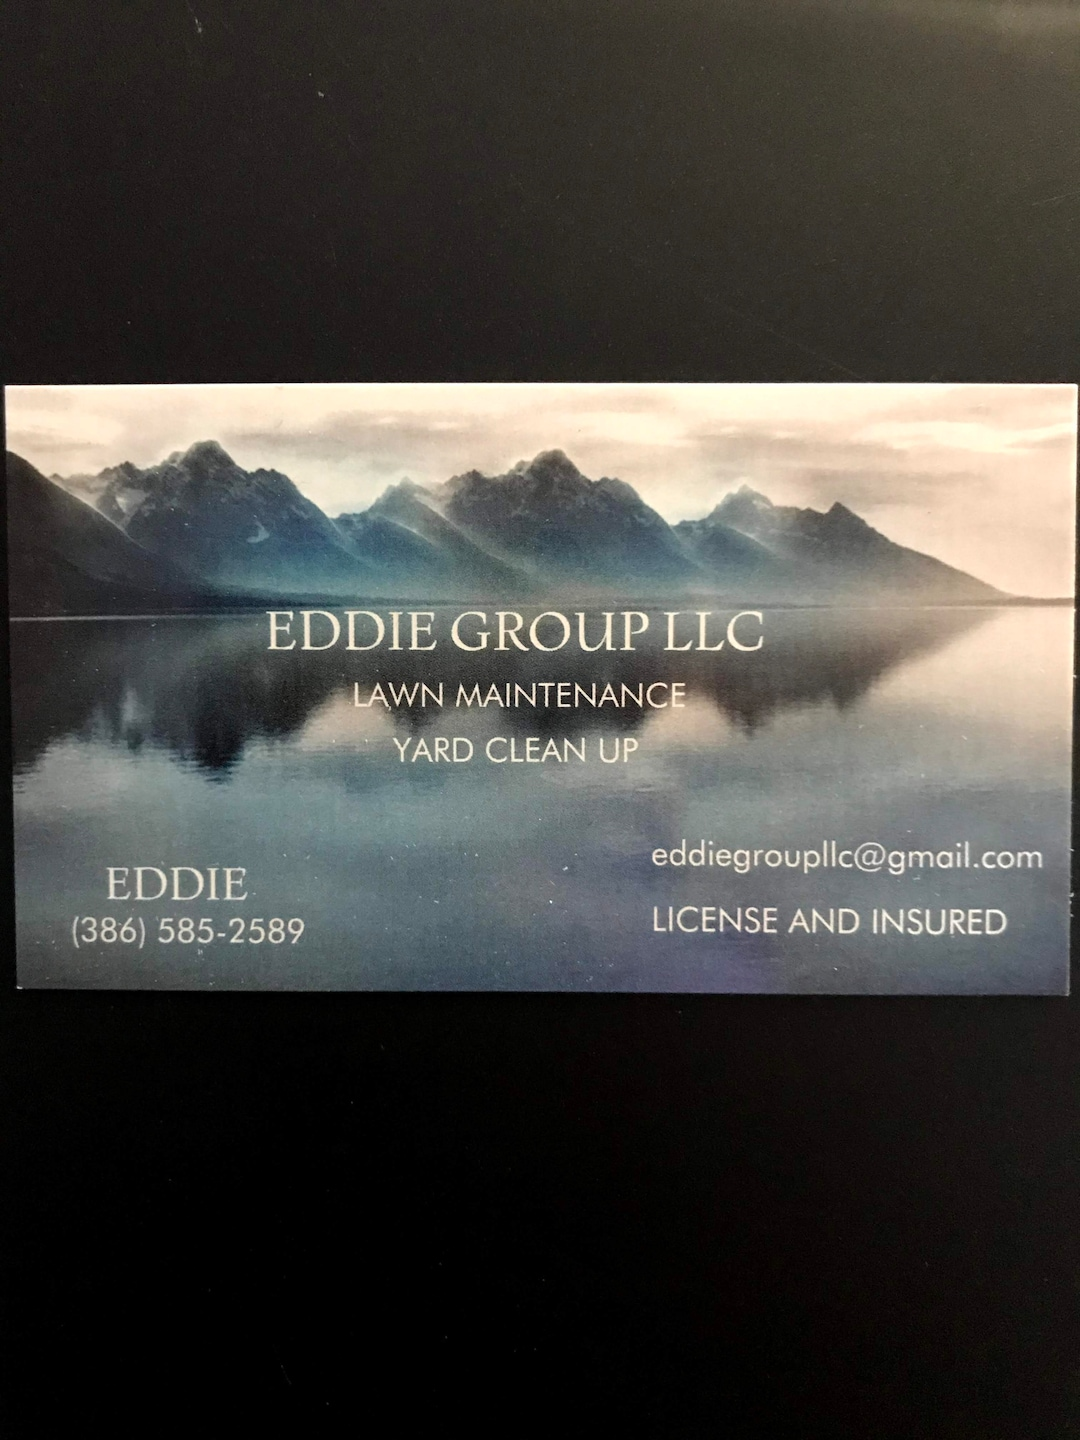 EDDIE GROUP LLC